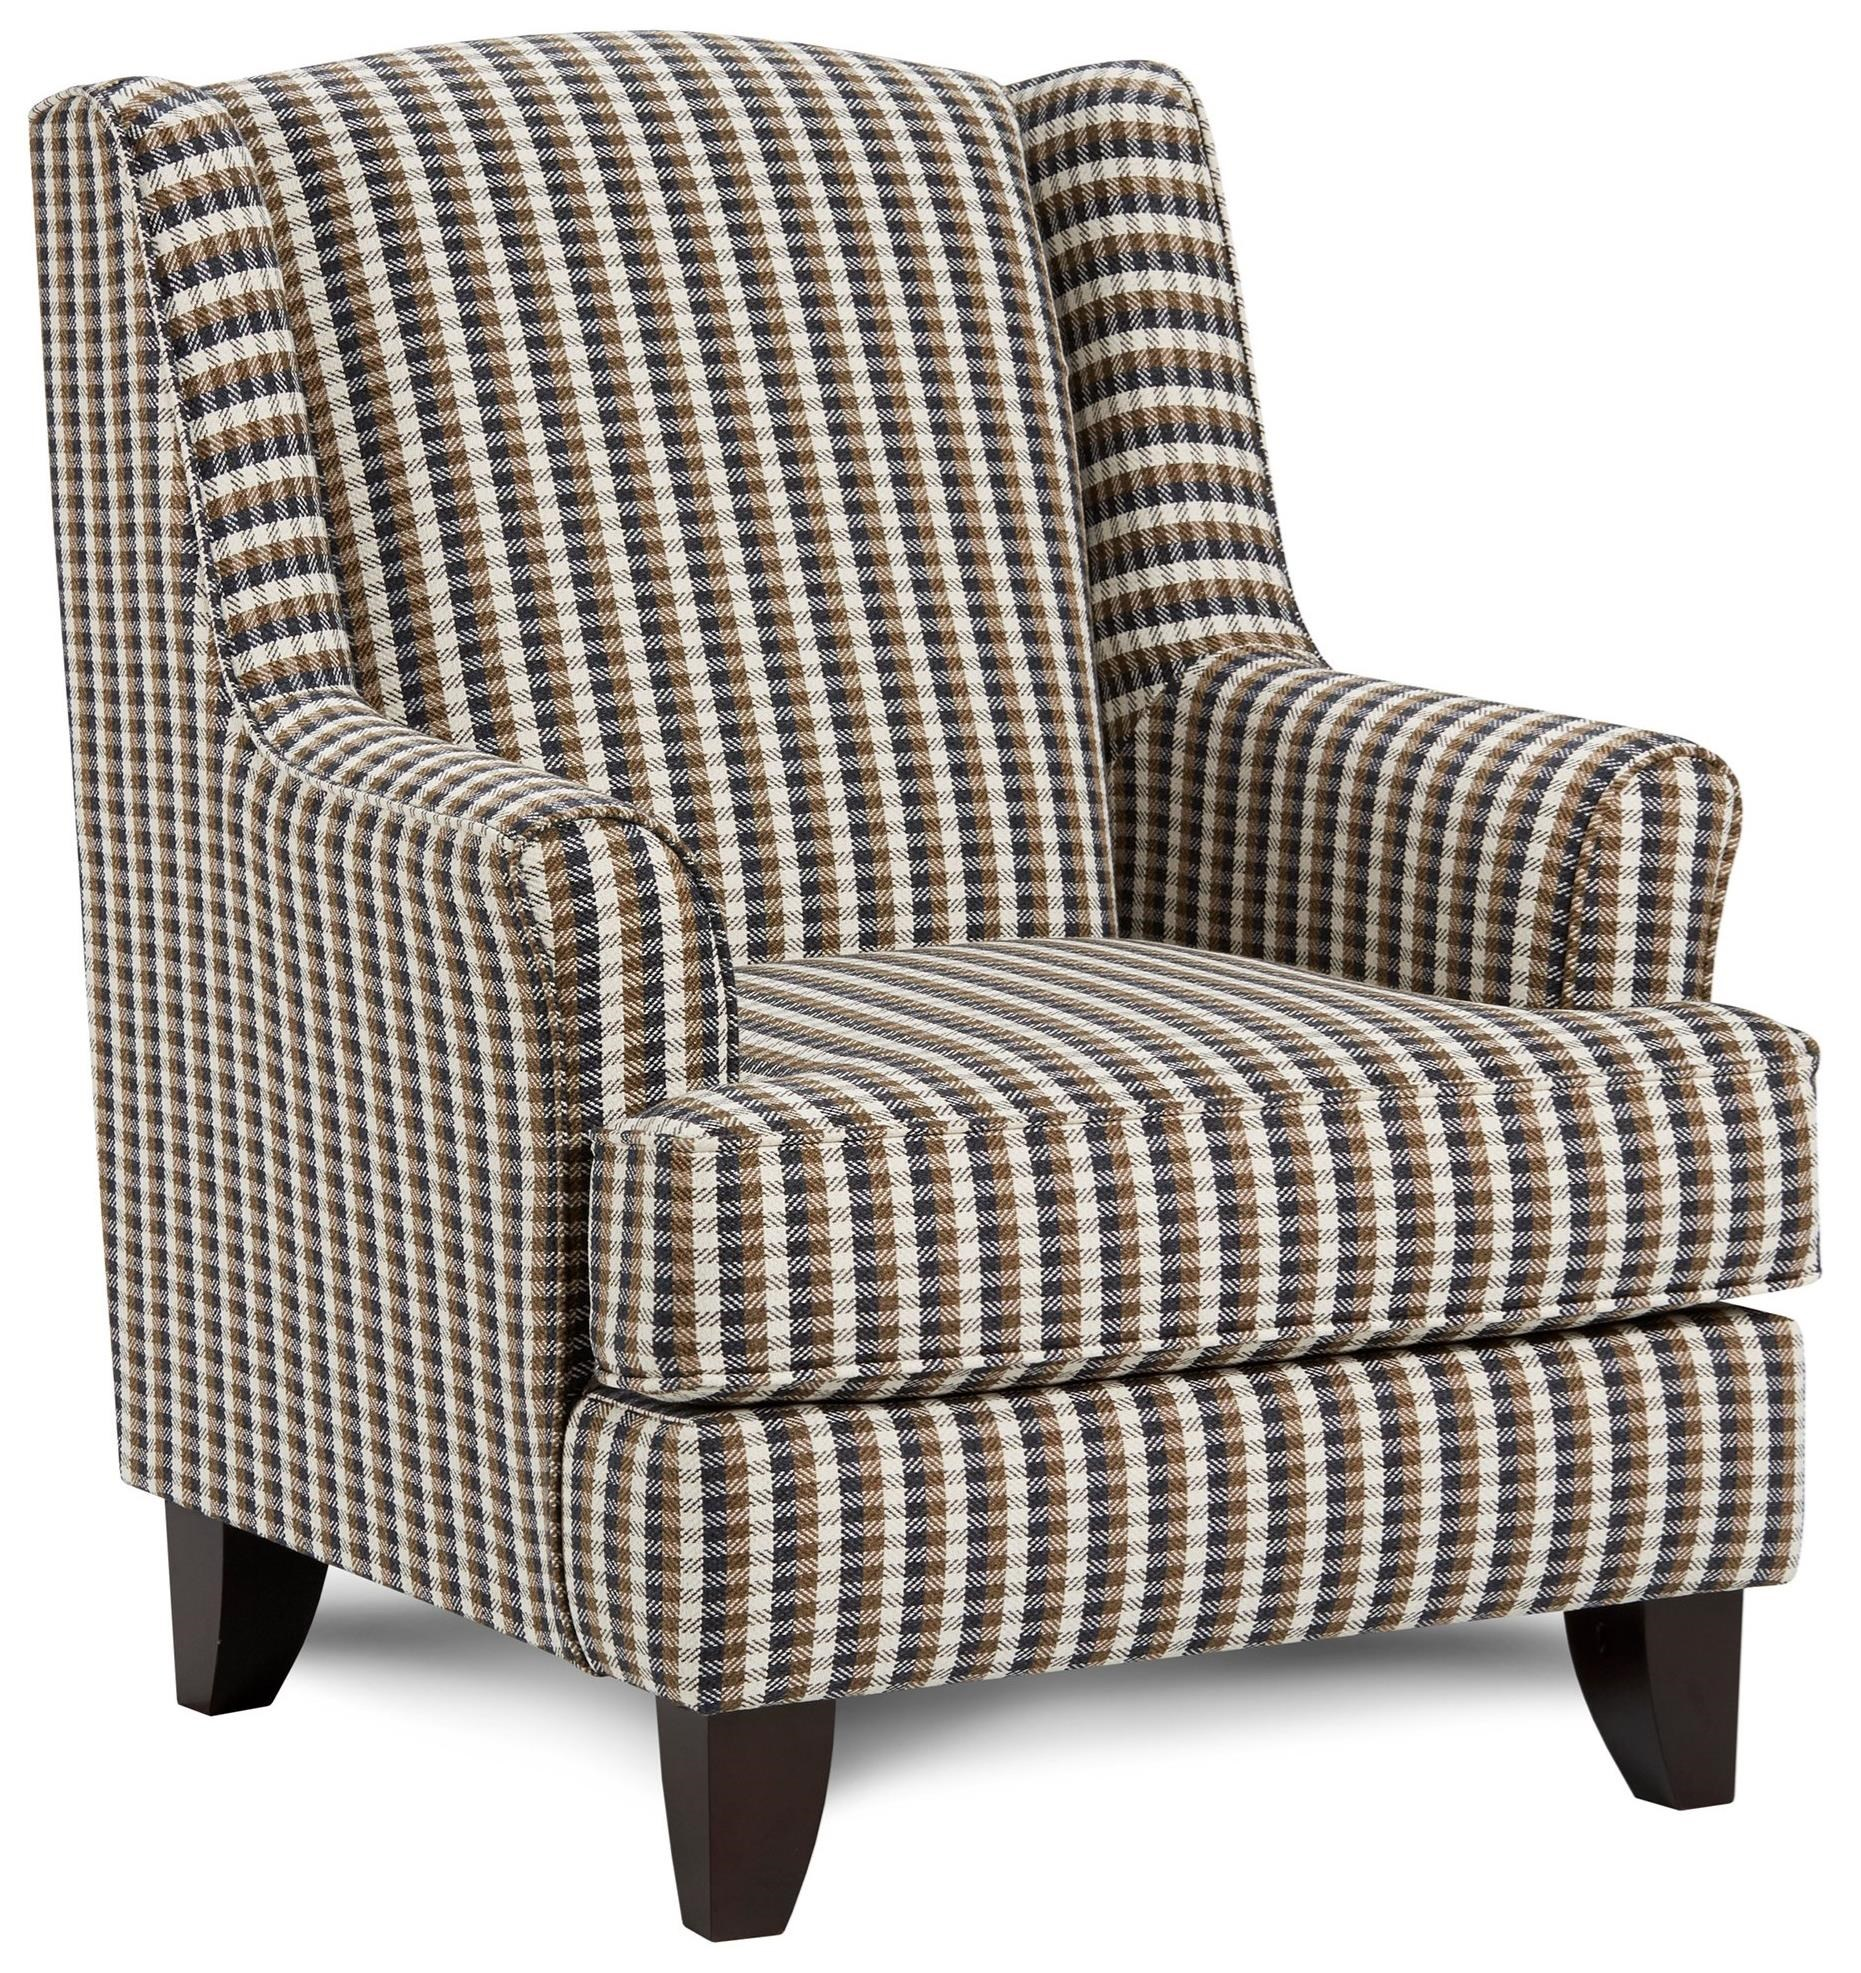 260 Chair by Fusion Furniture at Miller Waldrop Furniture and Decor